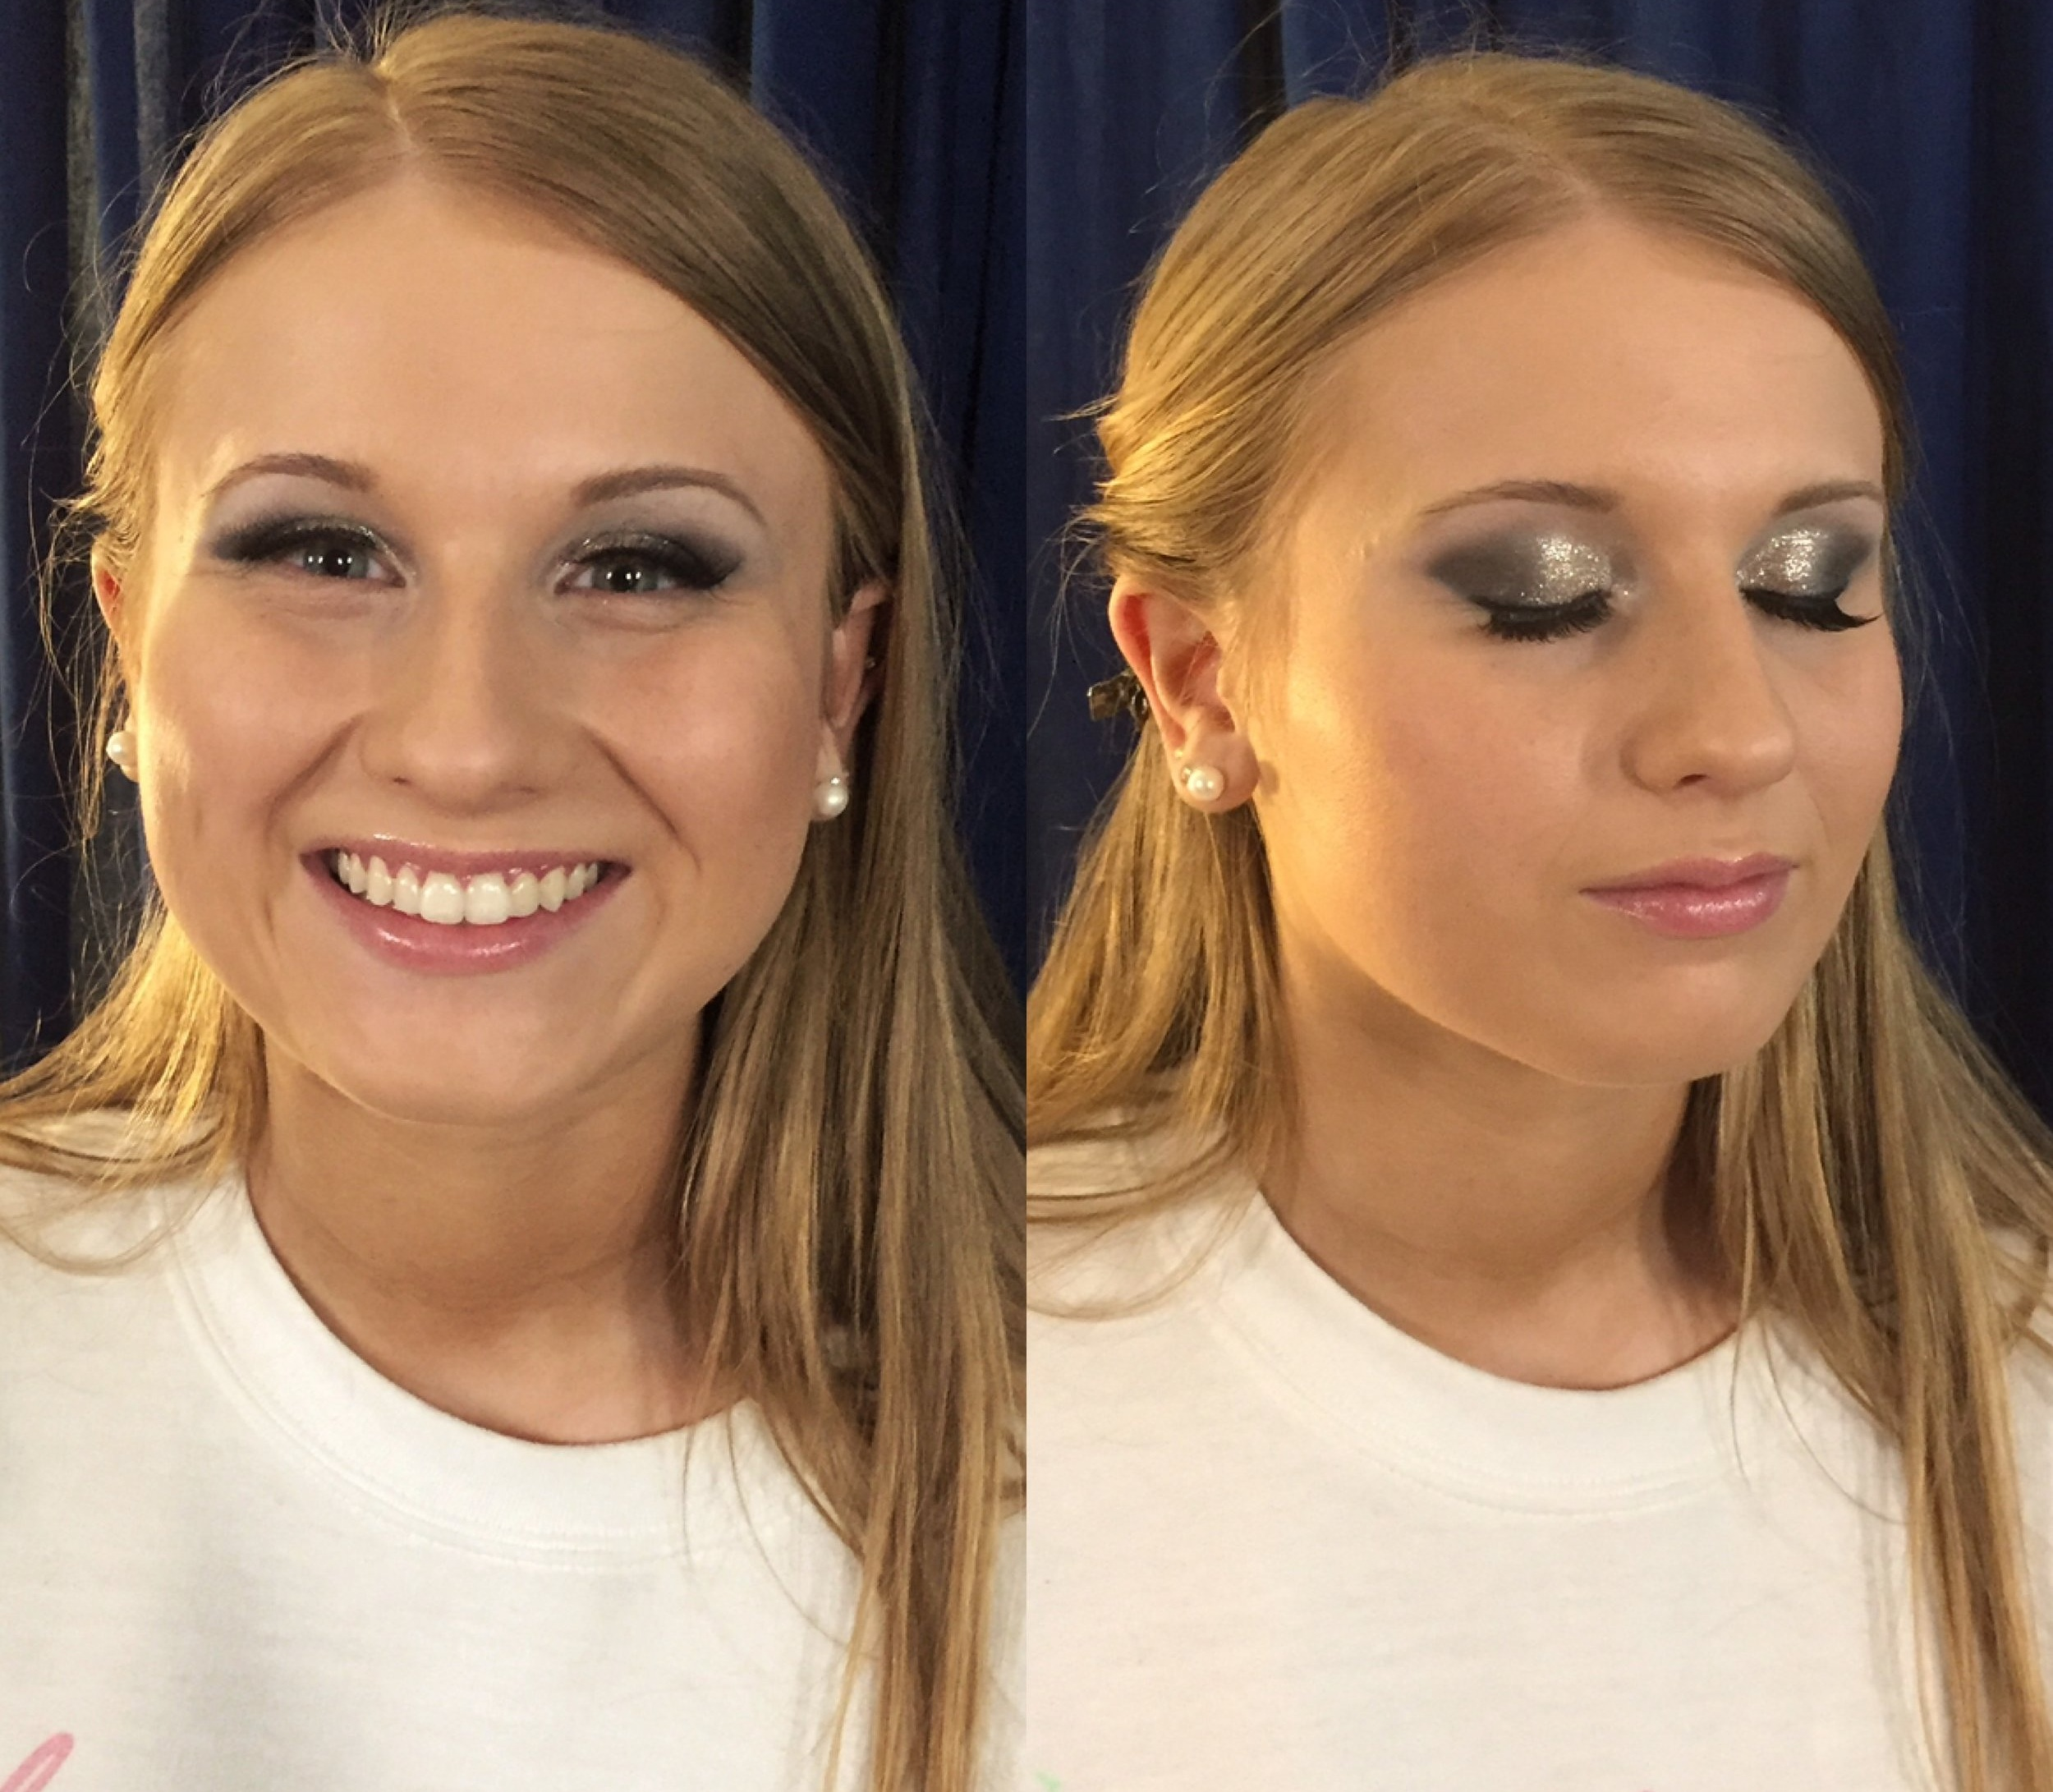 Party Night Please - Who doesn't want to feel like a million bucks for that special occasion? This lesson is all about getting glammed up for that party or special night out. We're going to show you how to bring some drama to those beautiful features of yours and how to pair the rest of your makeup with your favorite focal point.